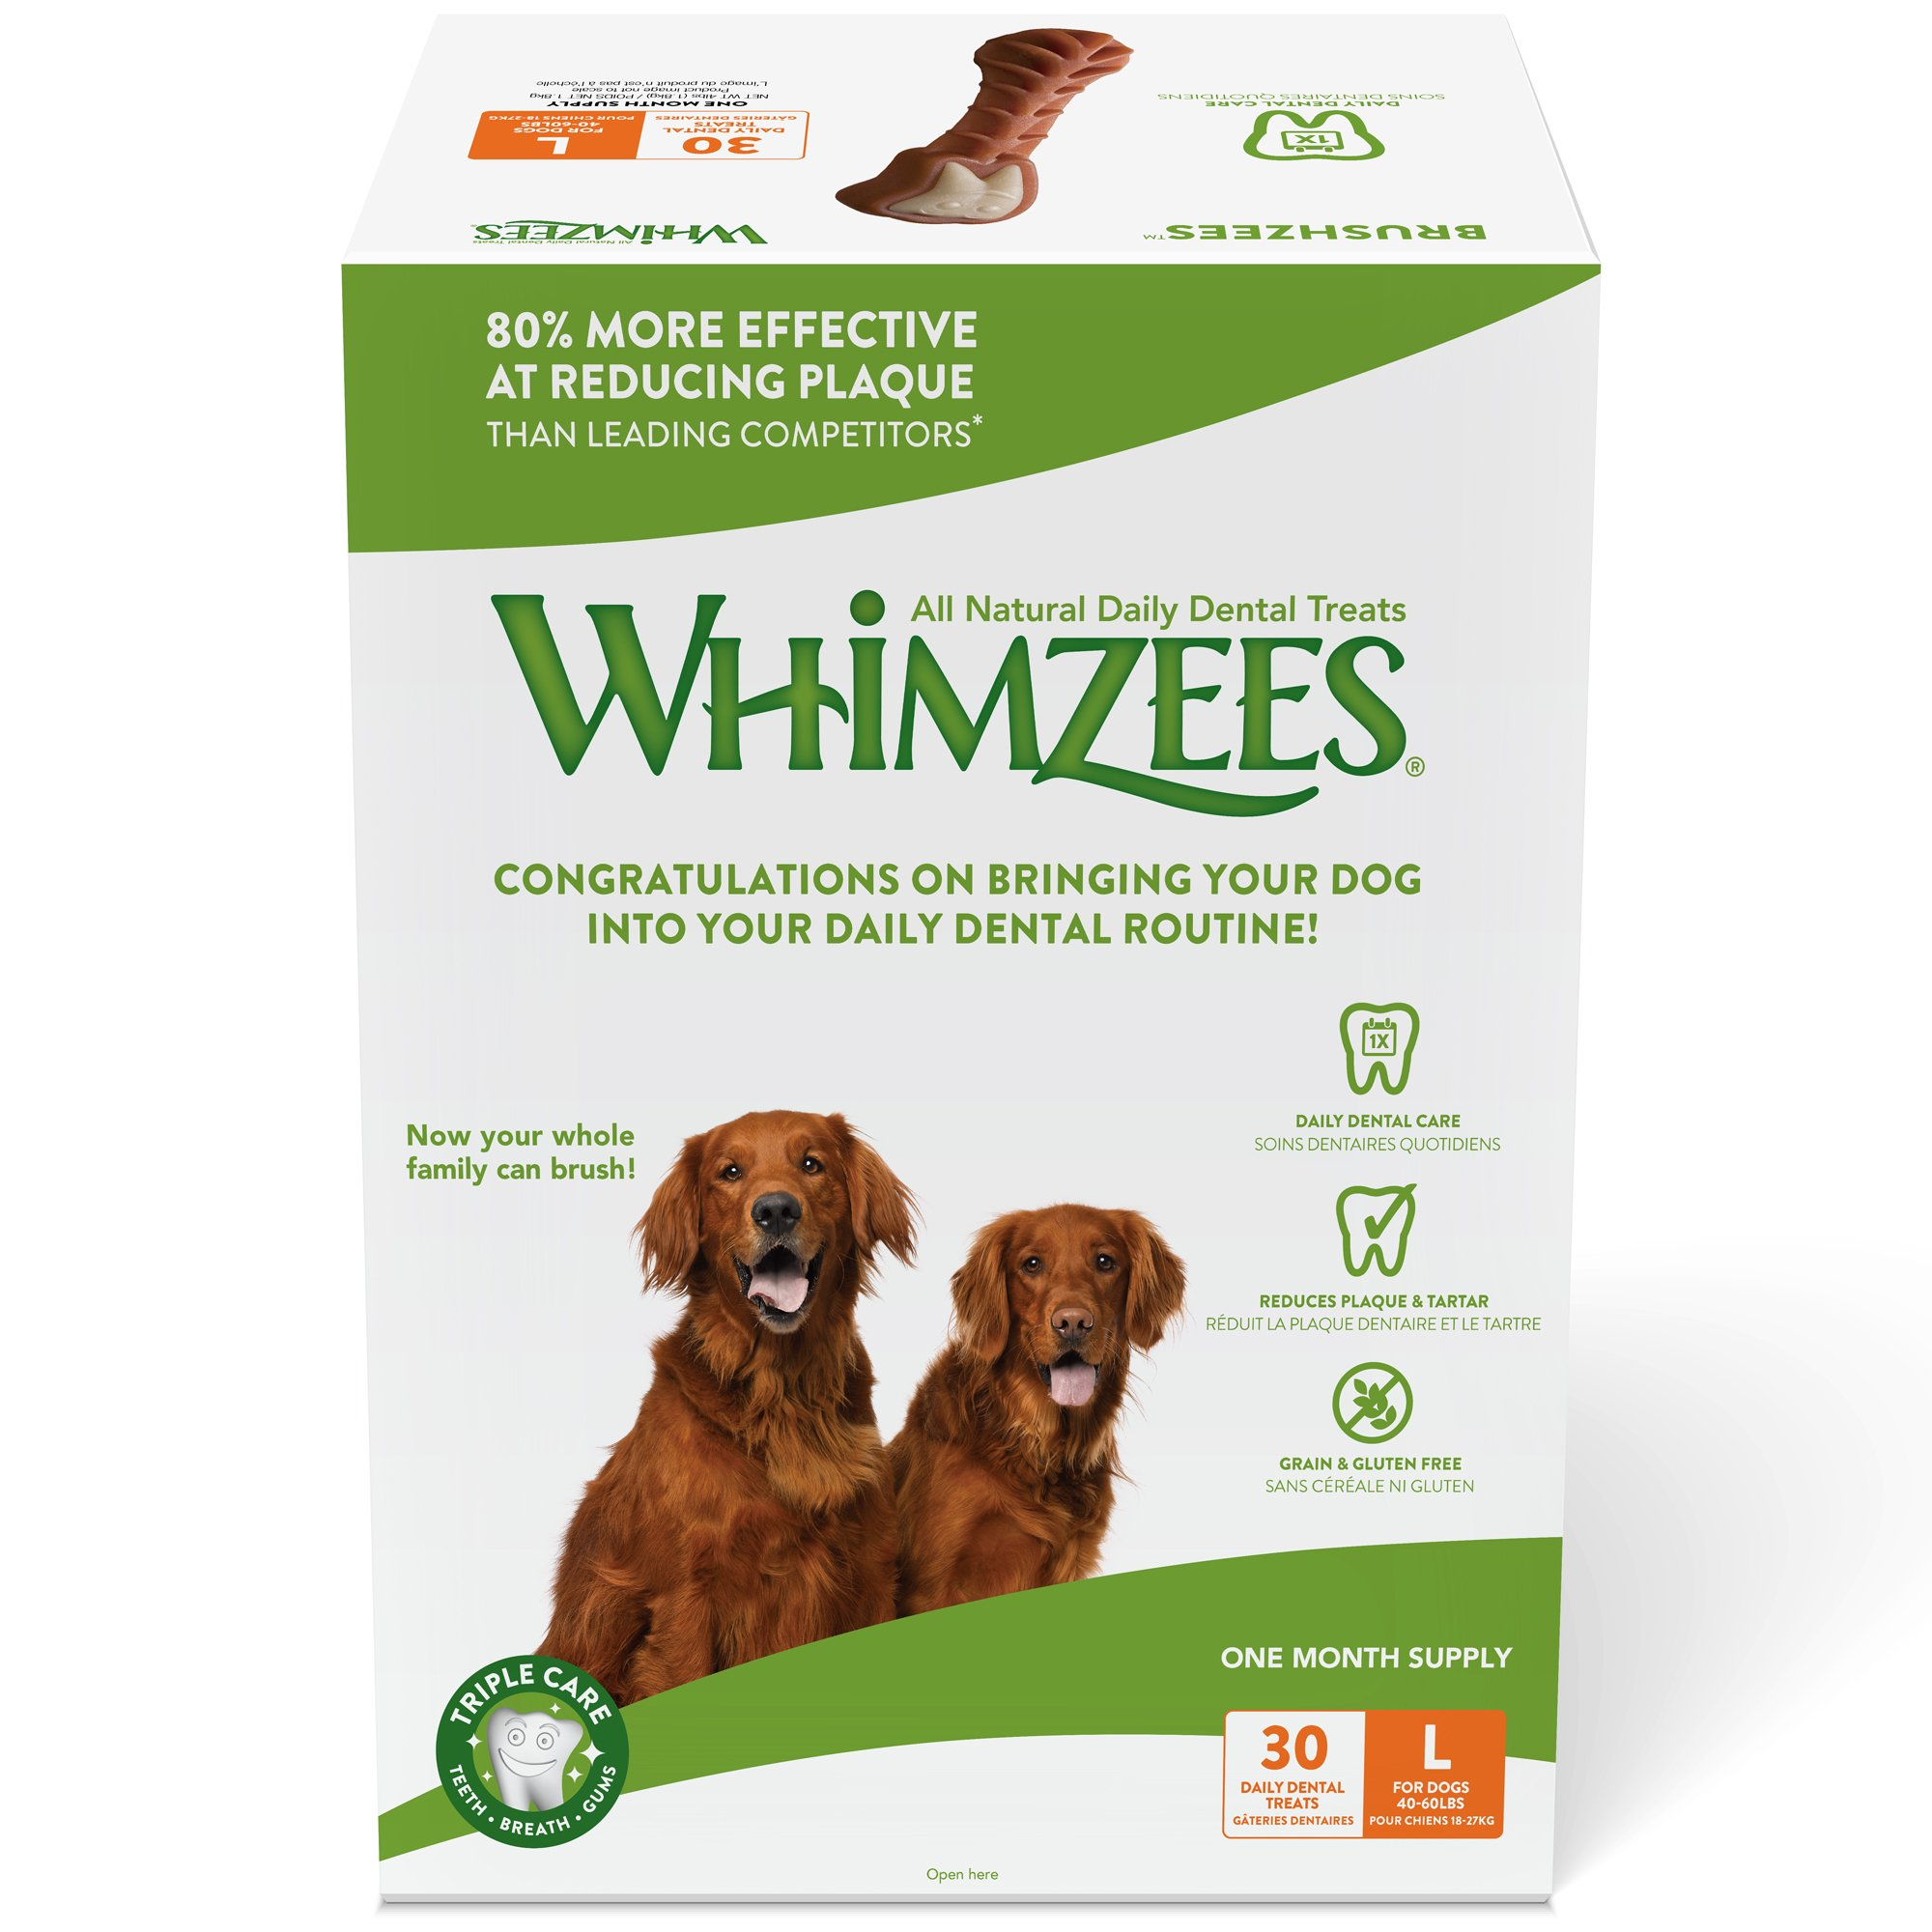 Whimzees 30 Day Pack Dog Dental Treats, Large Brushzees, Pack Of 30 by Whimzees (Image #1)